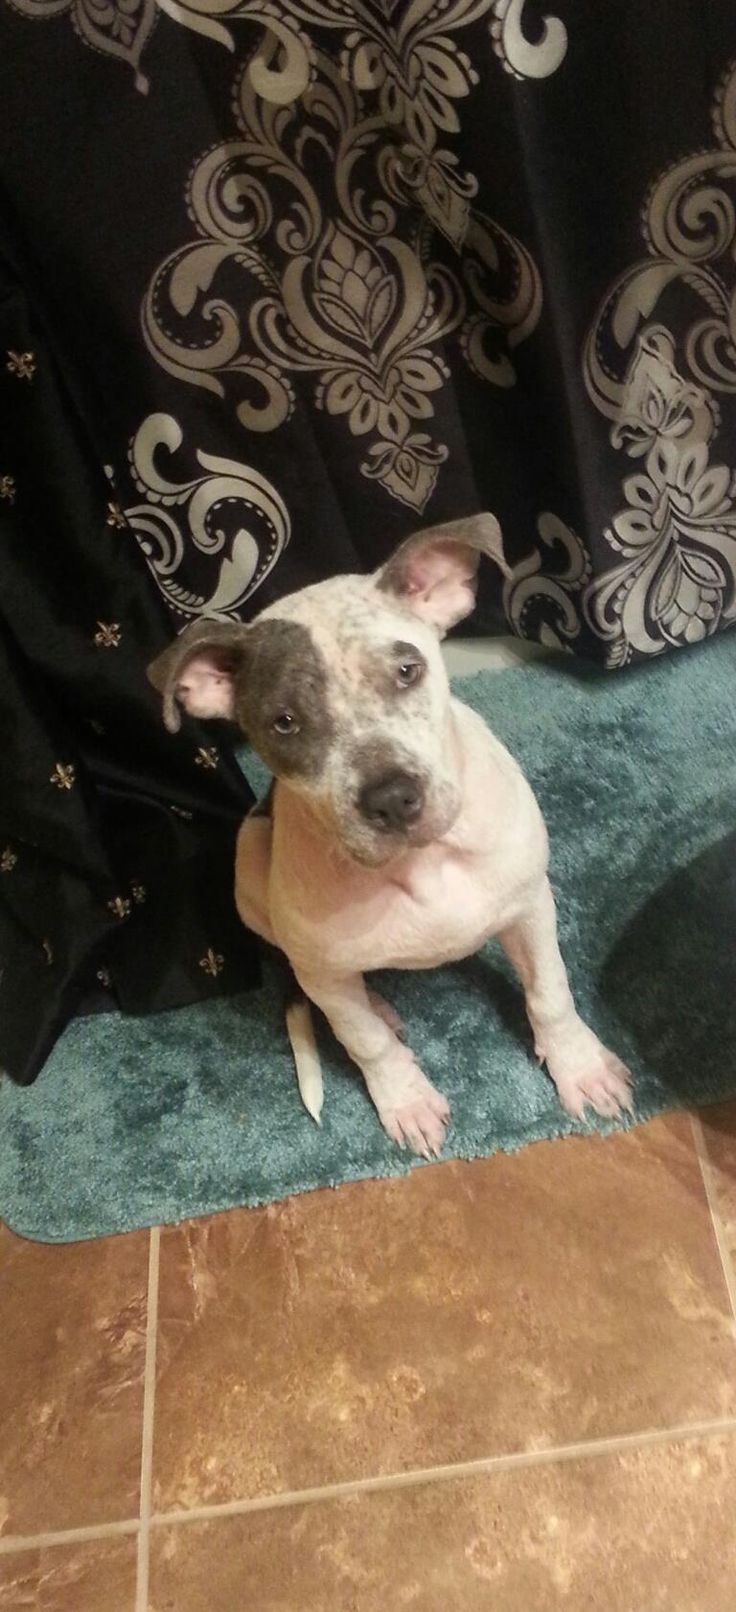 Katherine is an adoptable Pit Bull Terrier searching for a forever family near lake charles, LA. Use Petfinder to find adoptable pets in your area.